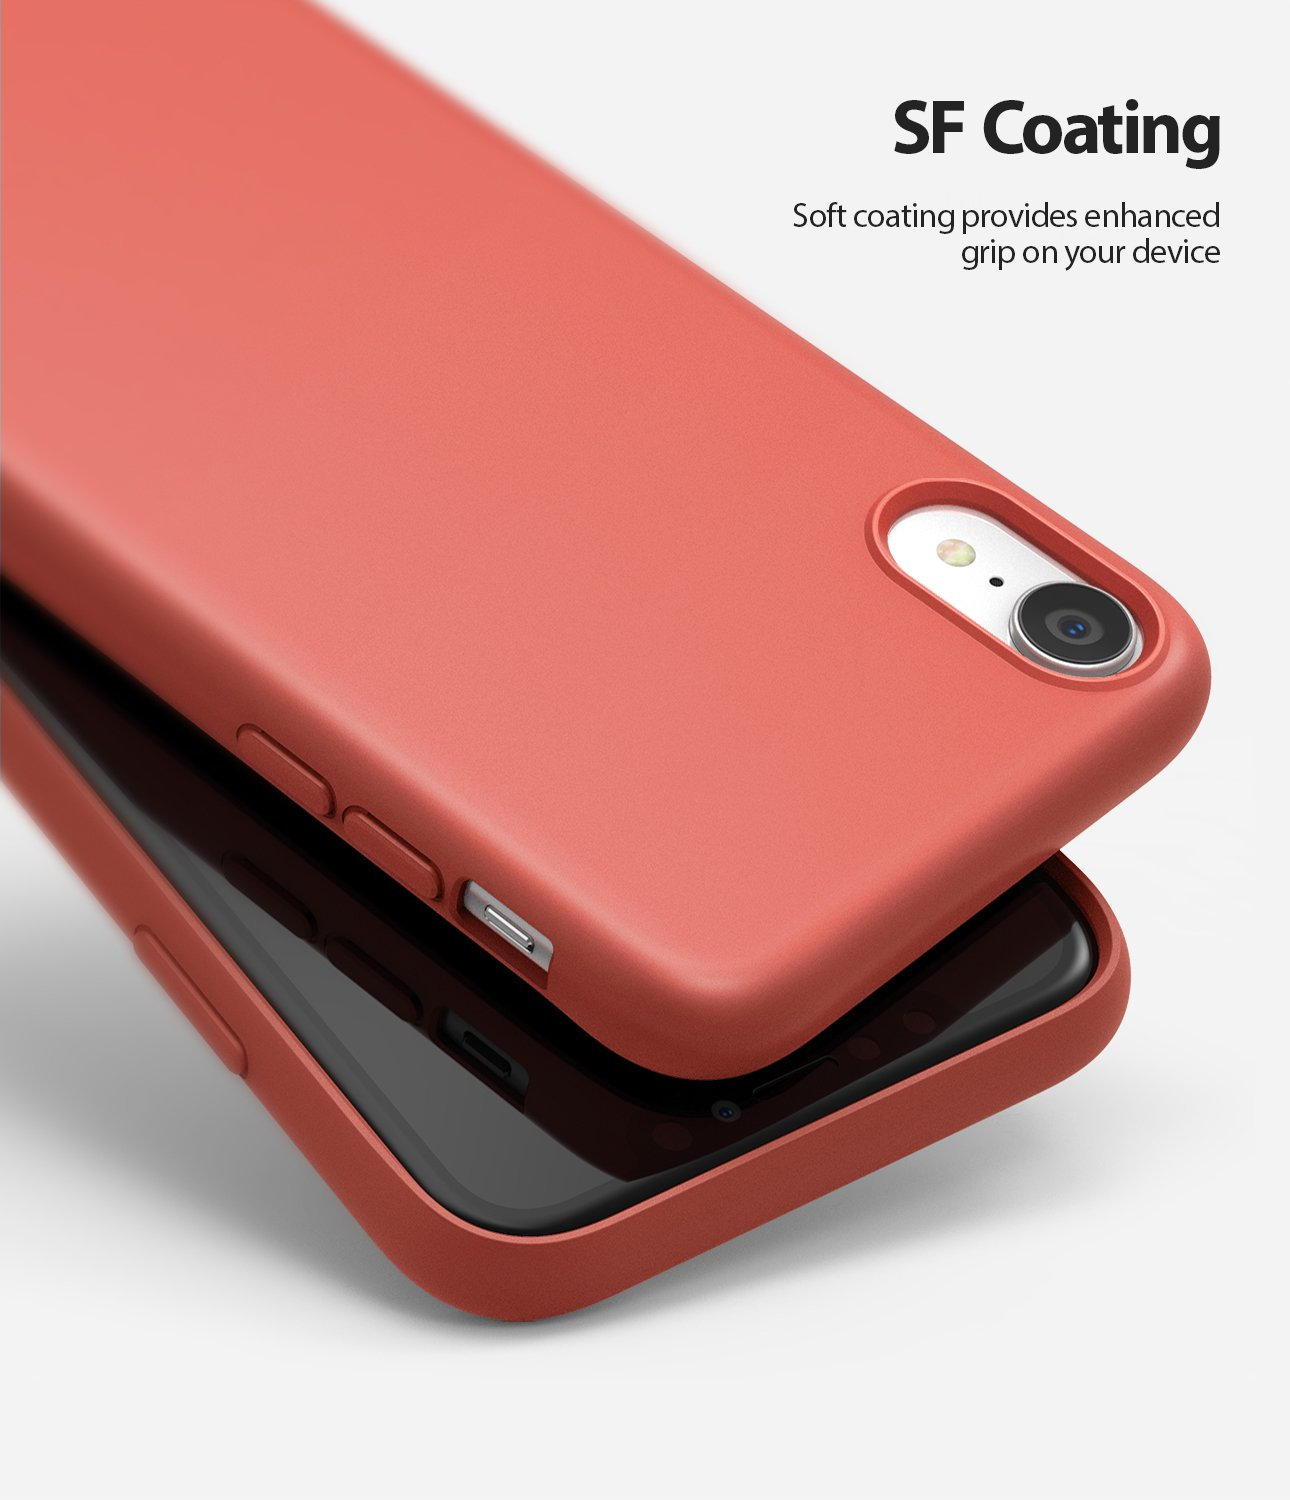 ringke air-s for iphone xr case cover sf coating